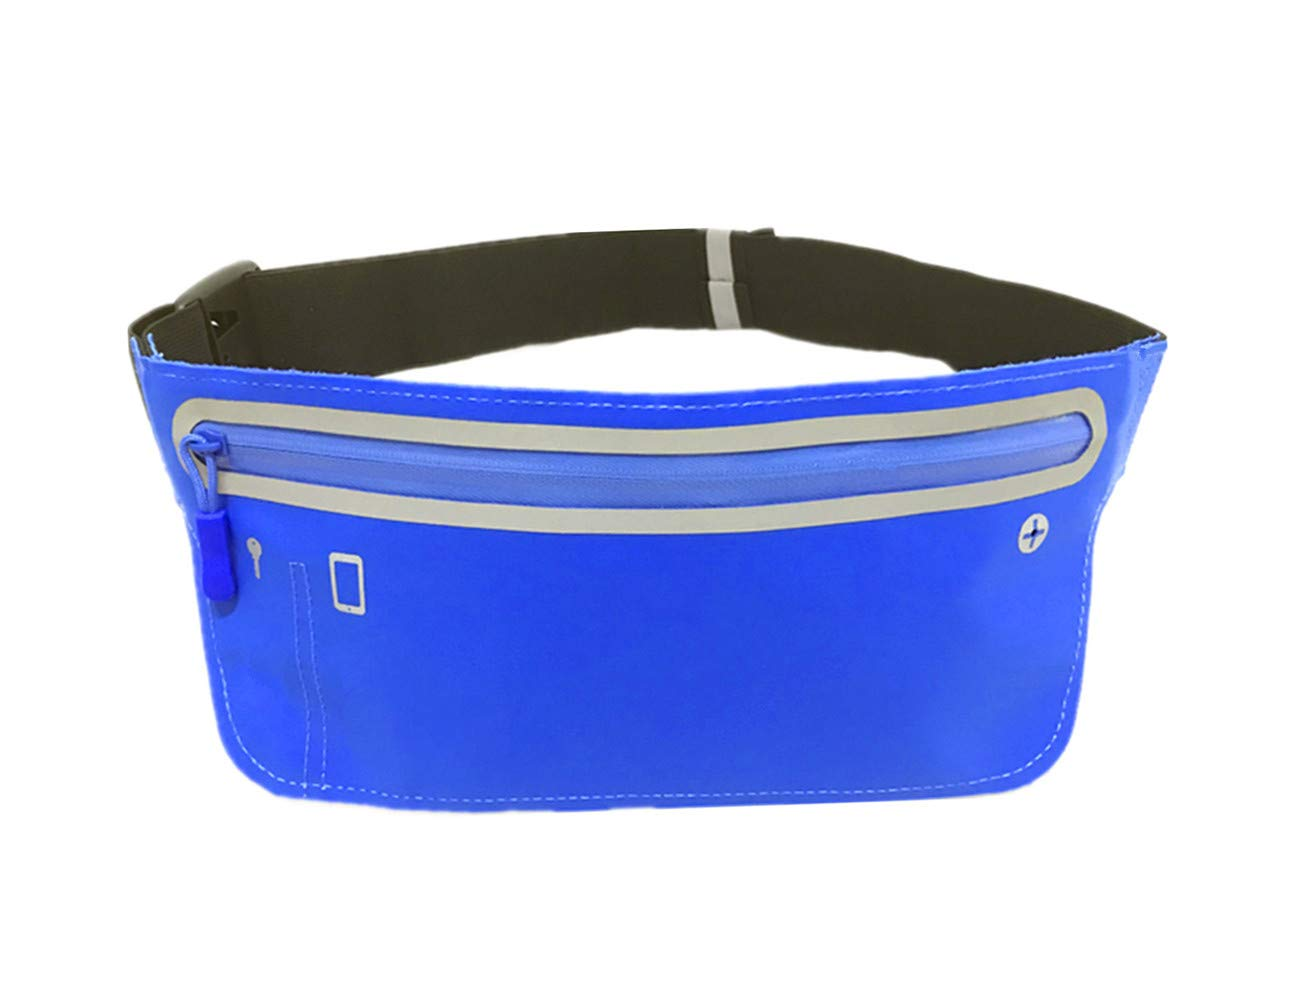 Runying Slim Running Belt for Women Men, Waist Fanny Pack, Adjustable Waistband, Exercise Waist Bag, Fits Phones for up to 6 inches, Idea for Cycling, Hiking, Fitness, Running, Yoga and More by Runying (Image #1)